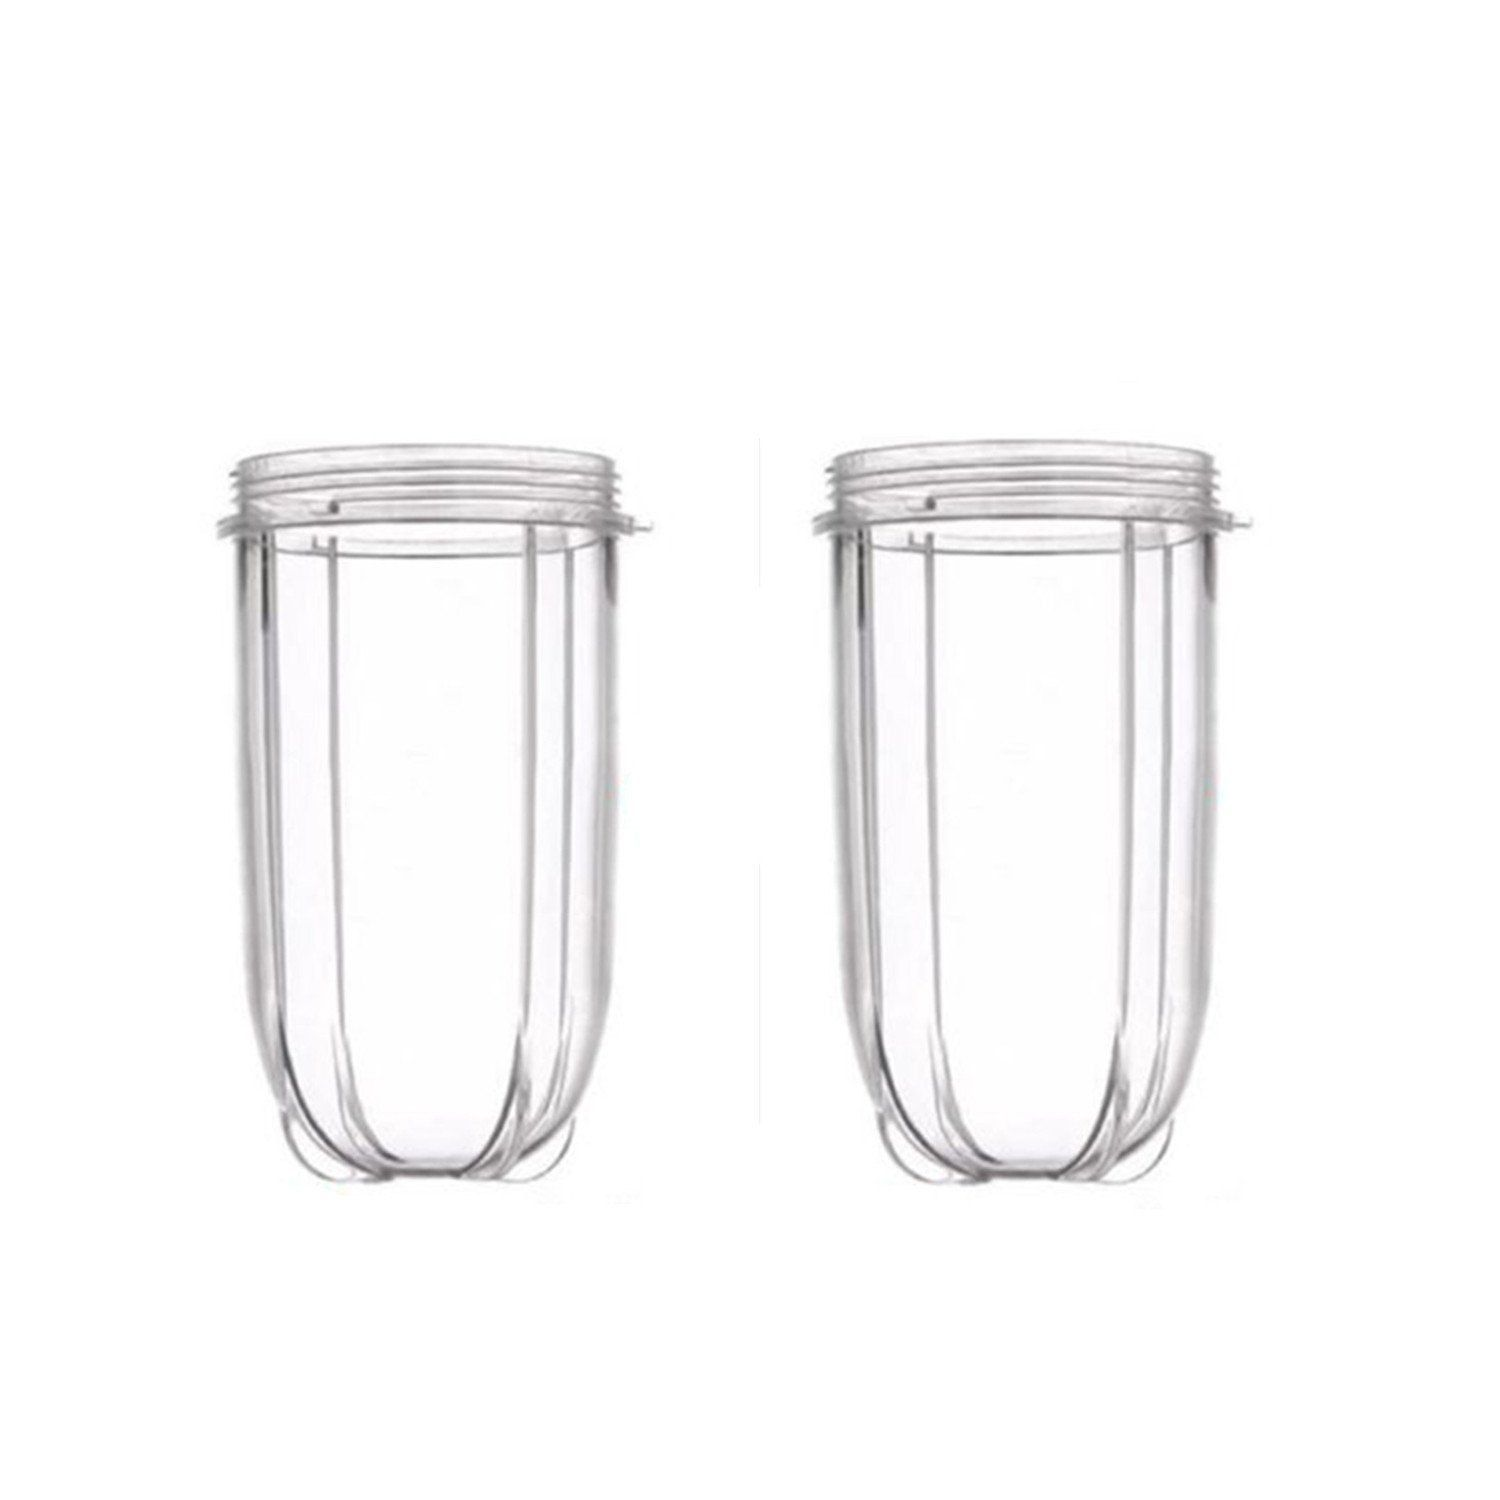 Blendin 2 Pack Replacement 16oz Tall Jar Cups,Fits